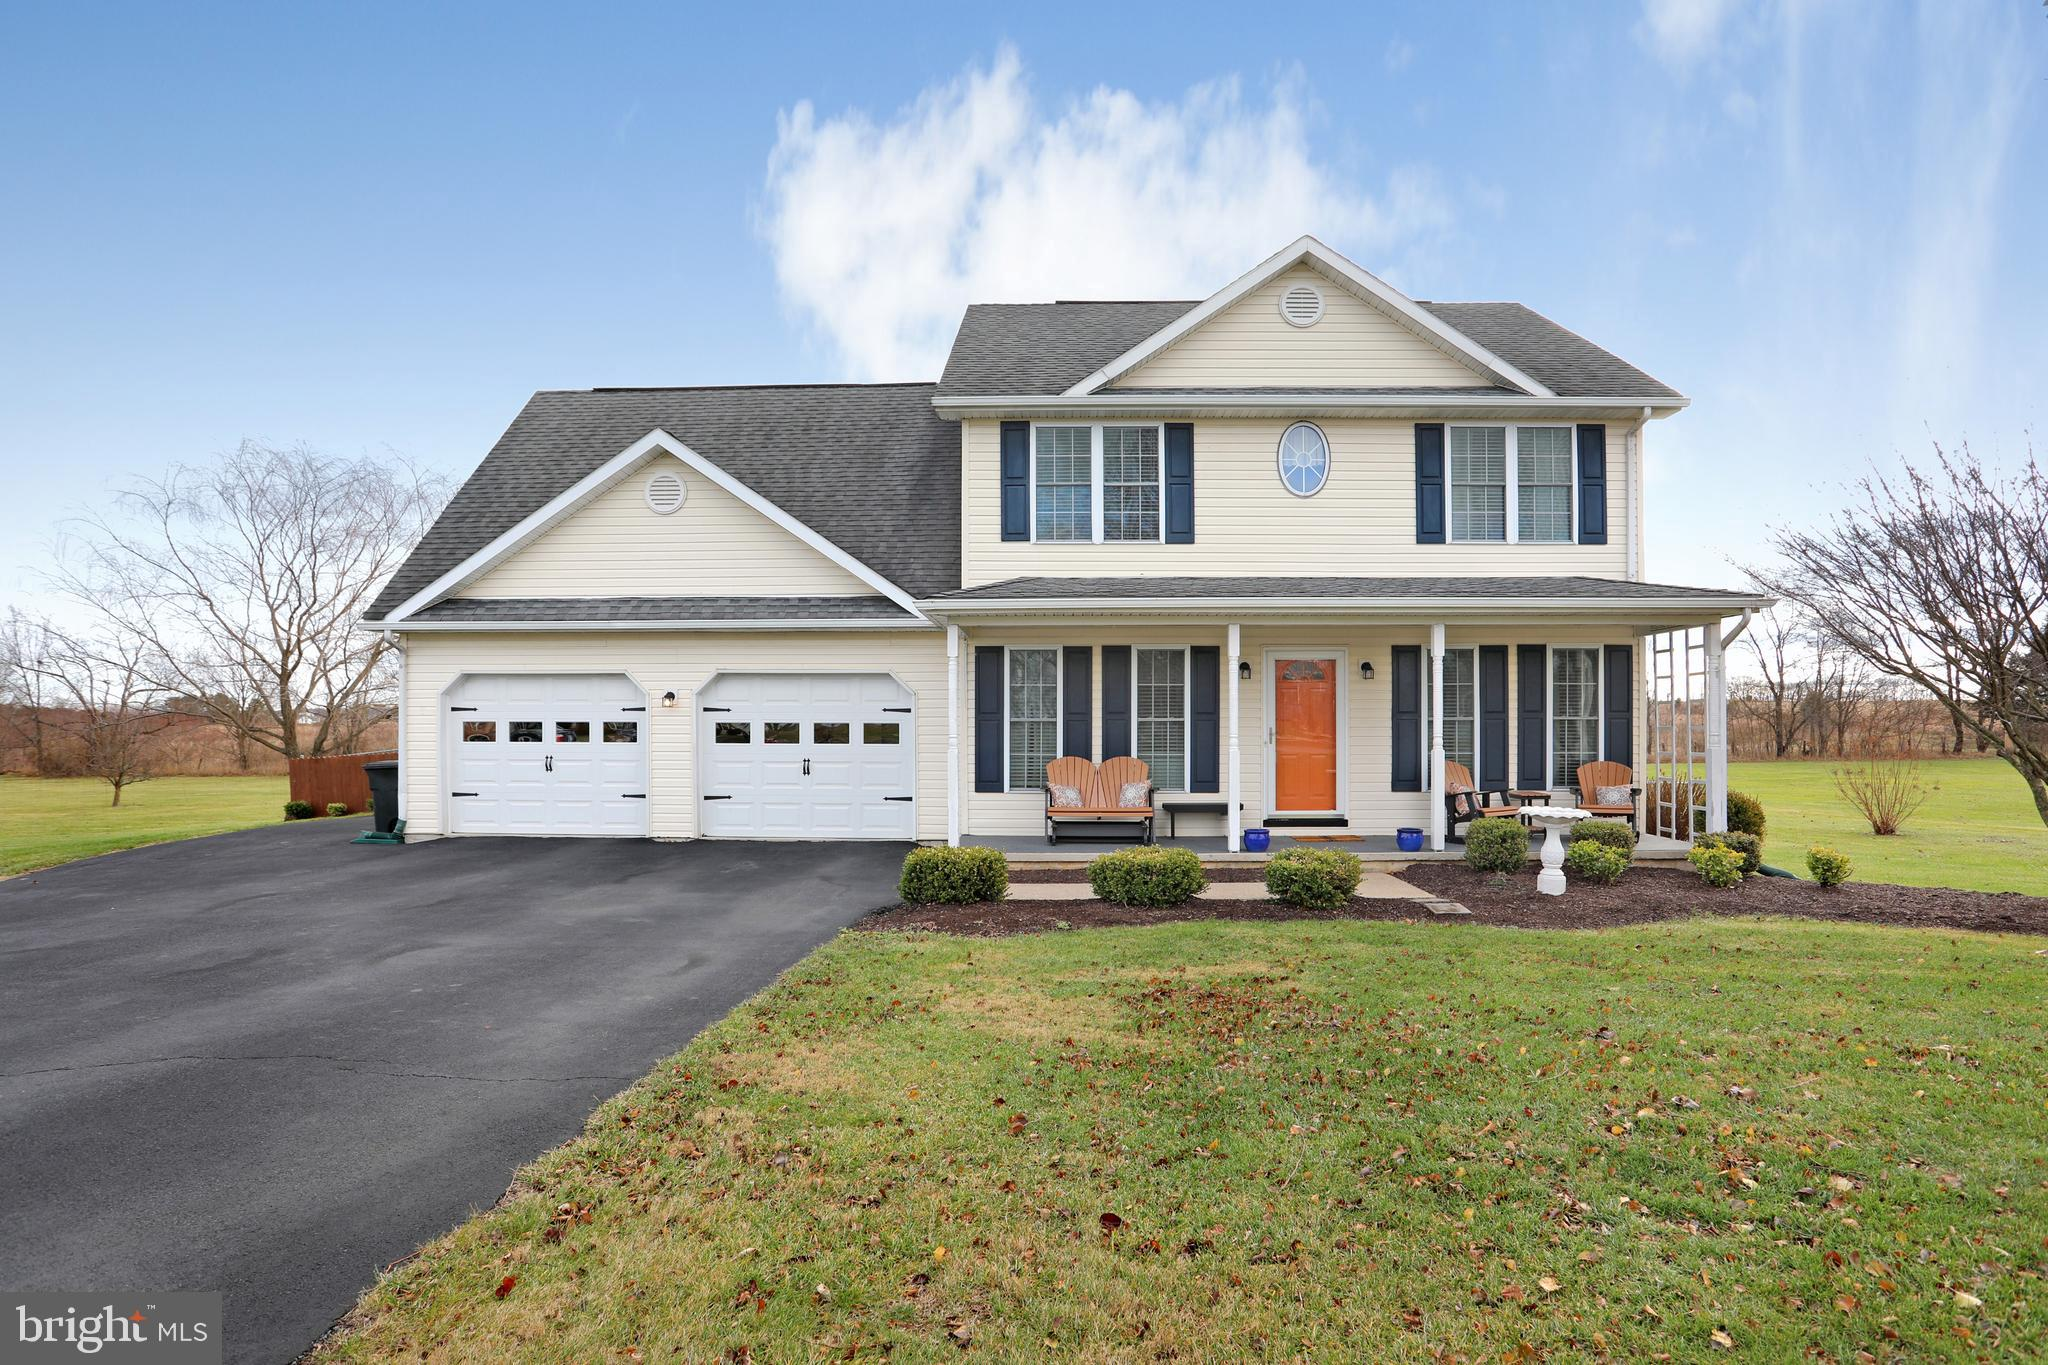 Beautiful 3 Bedroom 2.5 Bath Colonial Home in the well desired neighborhood of Scenic View Estates.